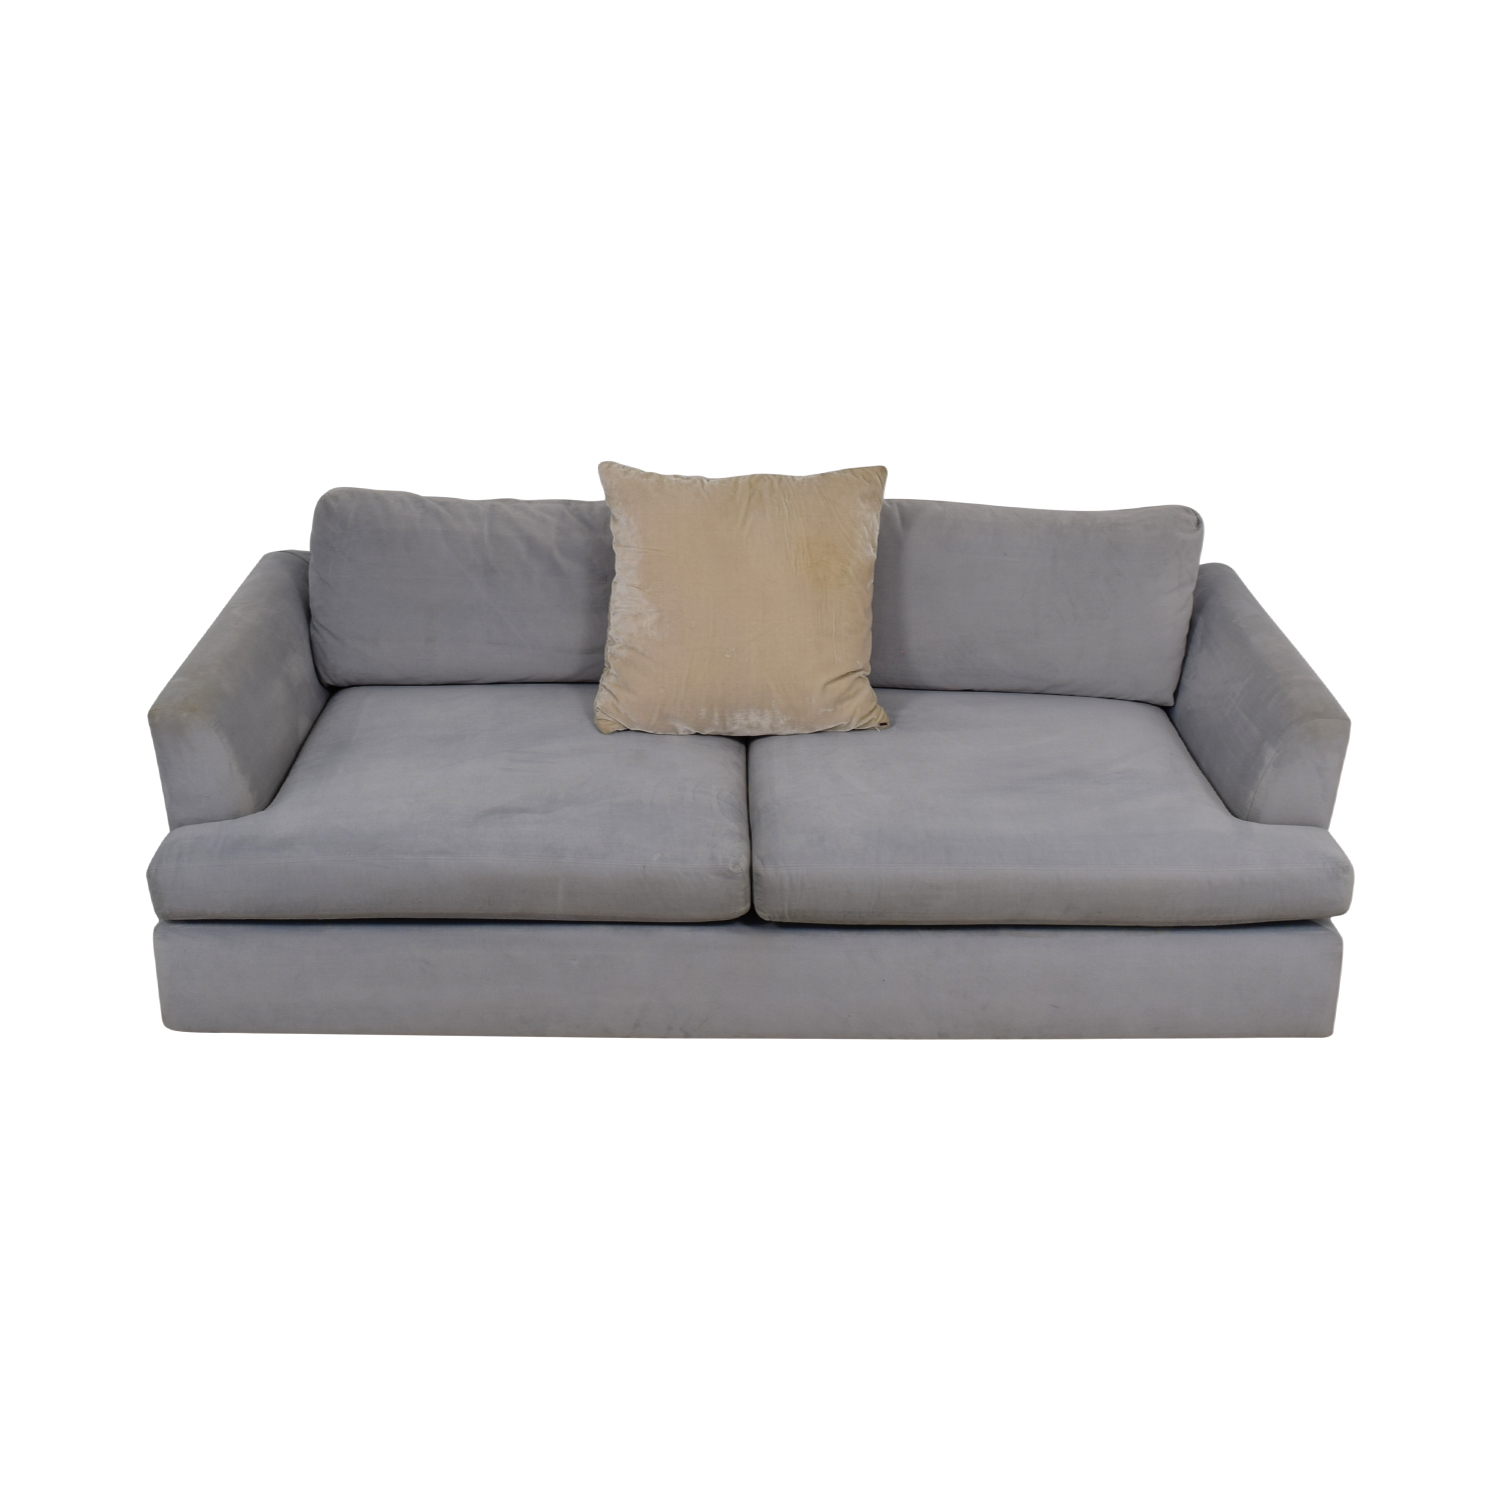 ABC Carpet & Home Cobble Hill Light Blue Two-Cushion Sofa ABC Carpet & Home